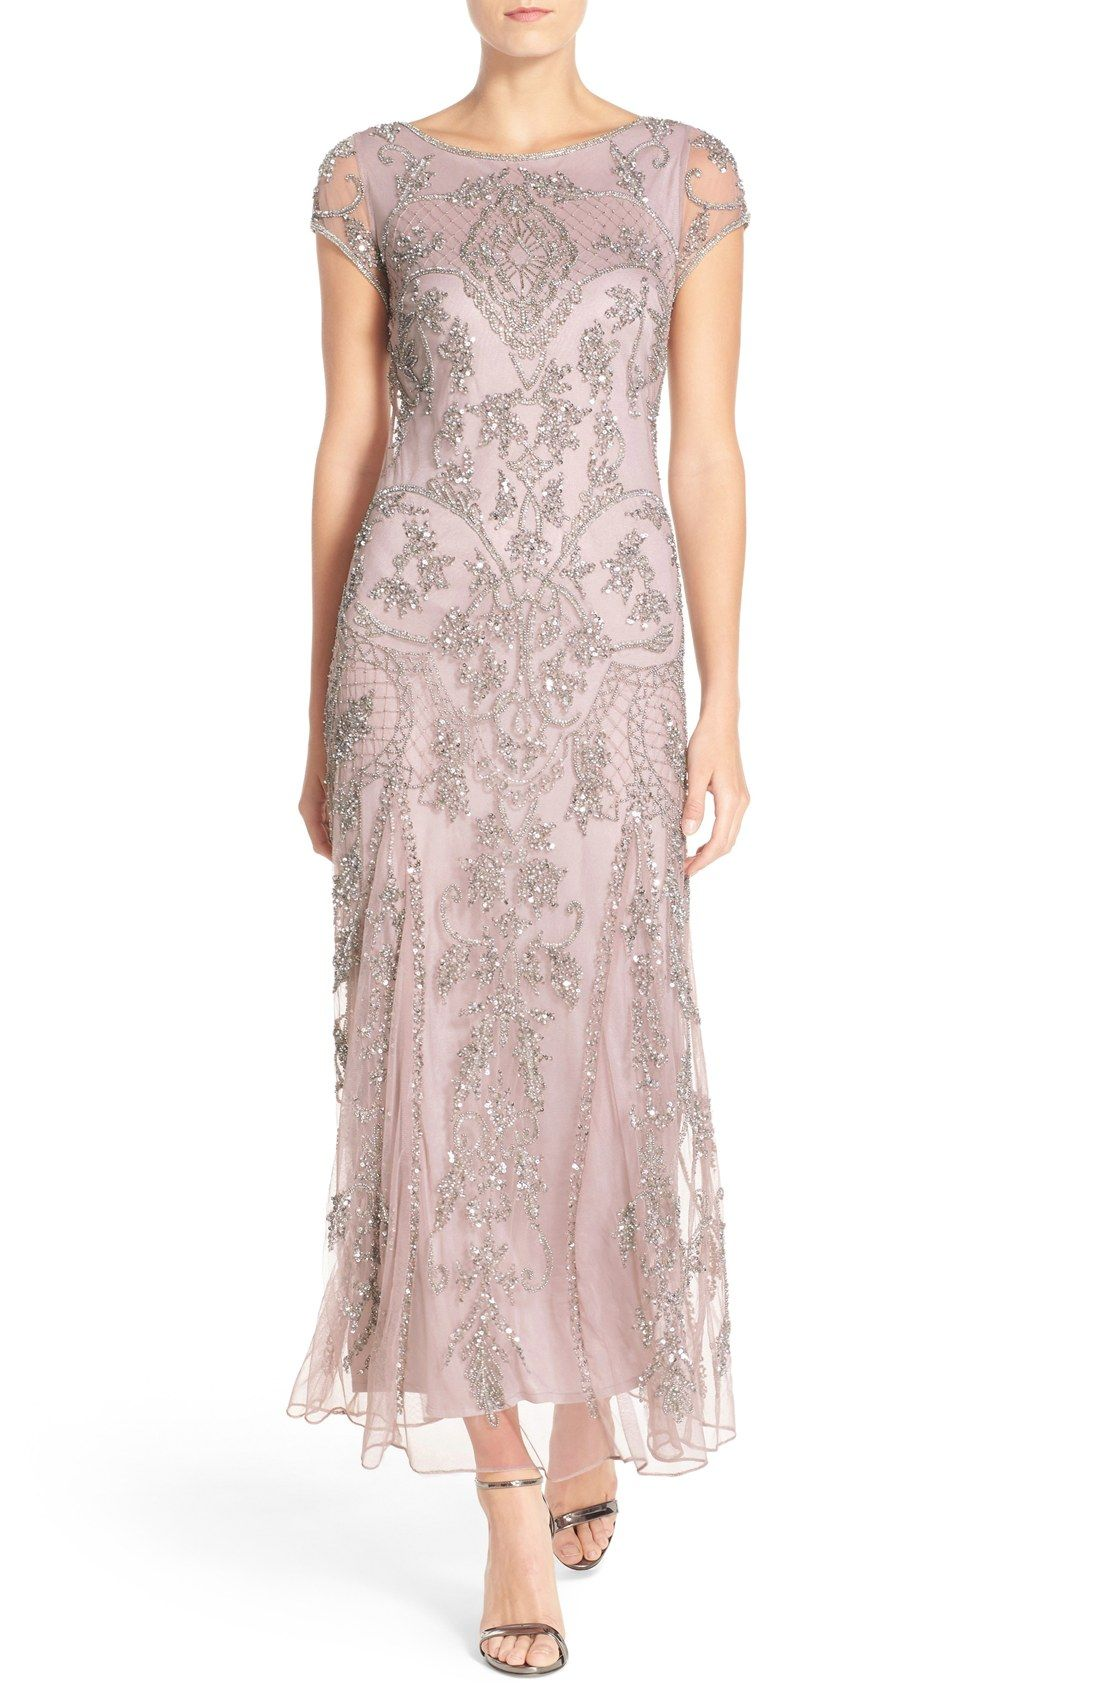 Hand Selected Mother Of The Bride Or Groom Dresses For Mothers To Wear To  Weddings